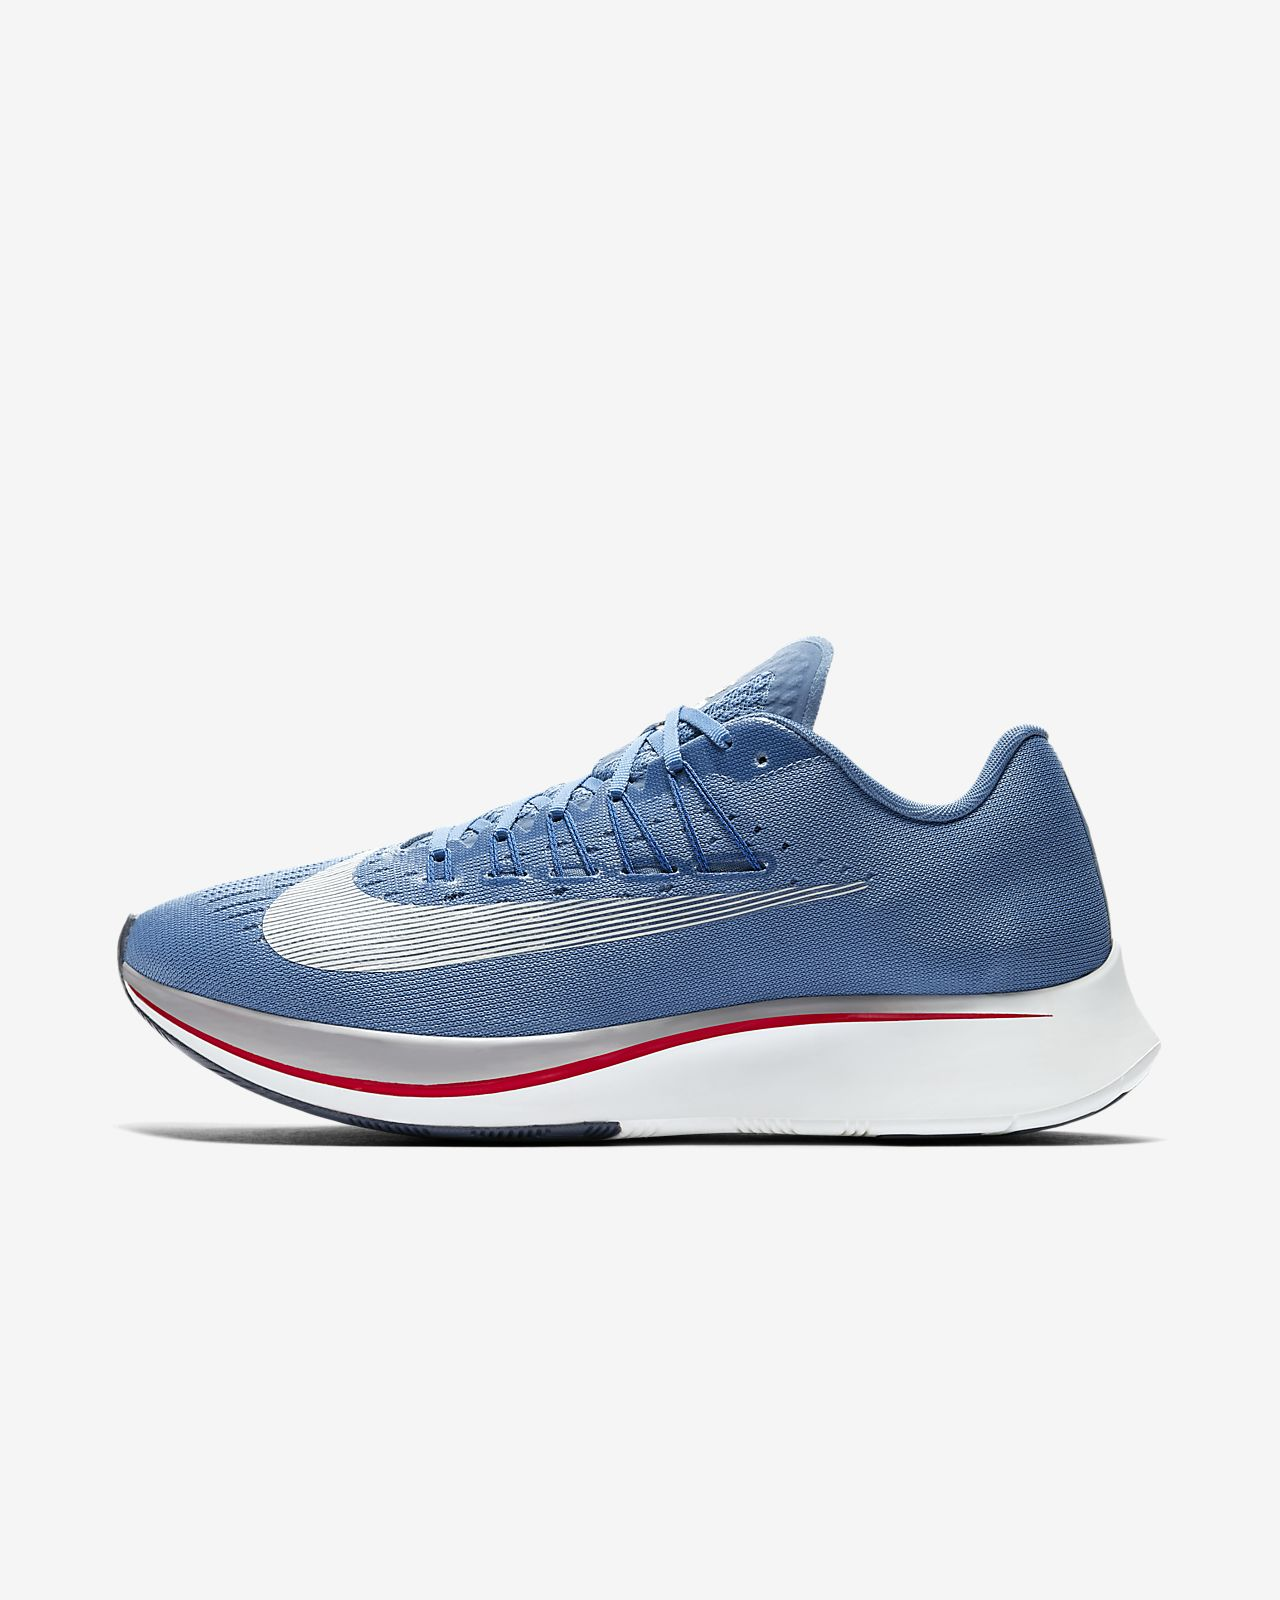 Nike Zoom Fly running sneakers buy cheap free shipping outlet clearance cheap excellent high quality buy online quality from china wholesale kmkg27DX